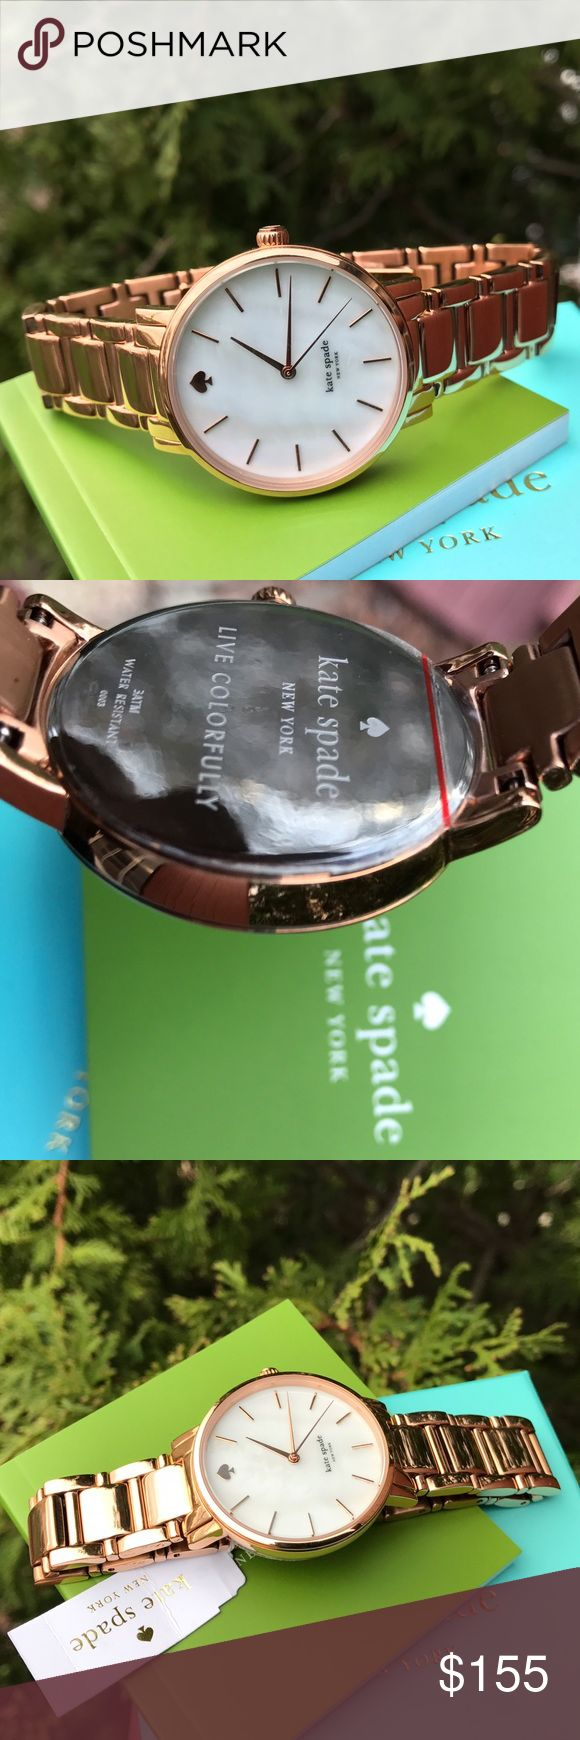 New Kate Spade Gramercy rose gold watch 1YRU0003 LAST 1! * Authentic 1YRU0003 * Model: Gramercy  * Retail: $225 * Rose gold stainless steel  * New with Kate Spade watch box and owners booklet included  * 34mm Mother-Of-Pearl dial  * 3 ATM  * UPC: 098686250697 * WHAT A BEAUTY!  No trades. Buy now or offer only / Same business day shipping kate spade Accessories Watches